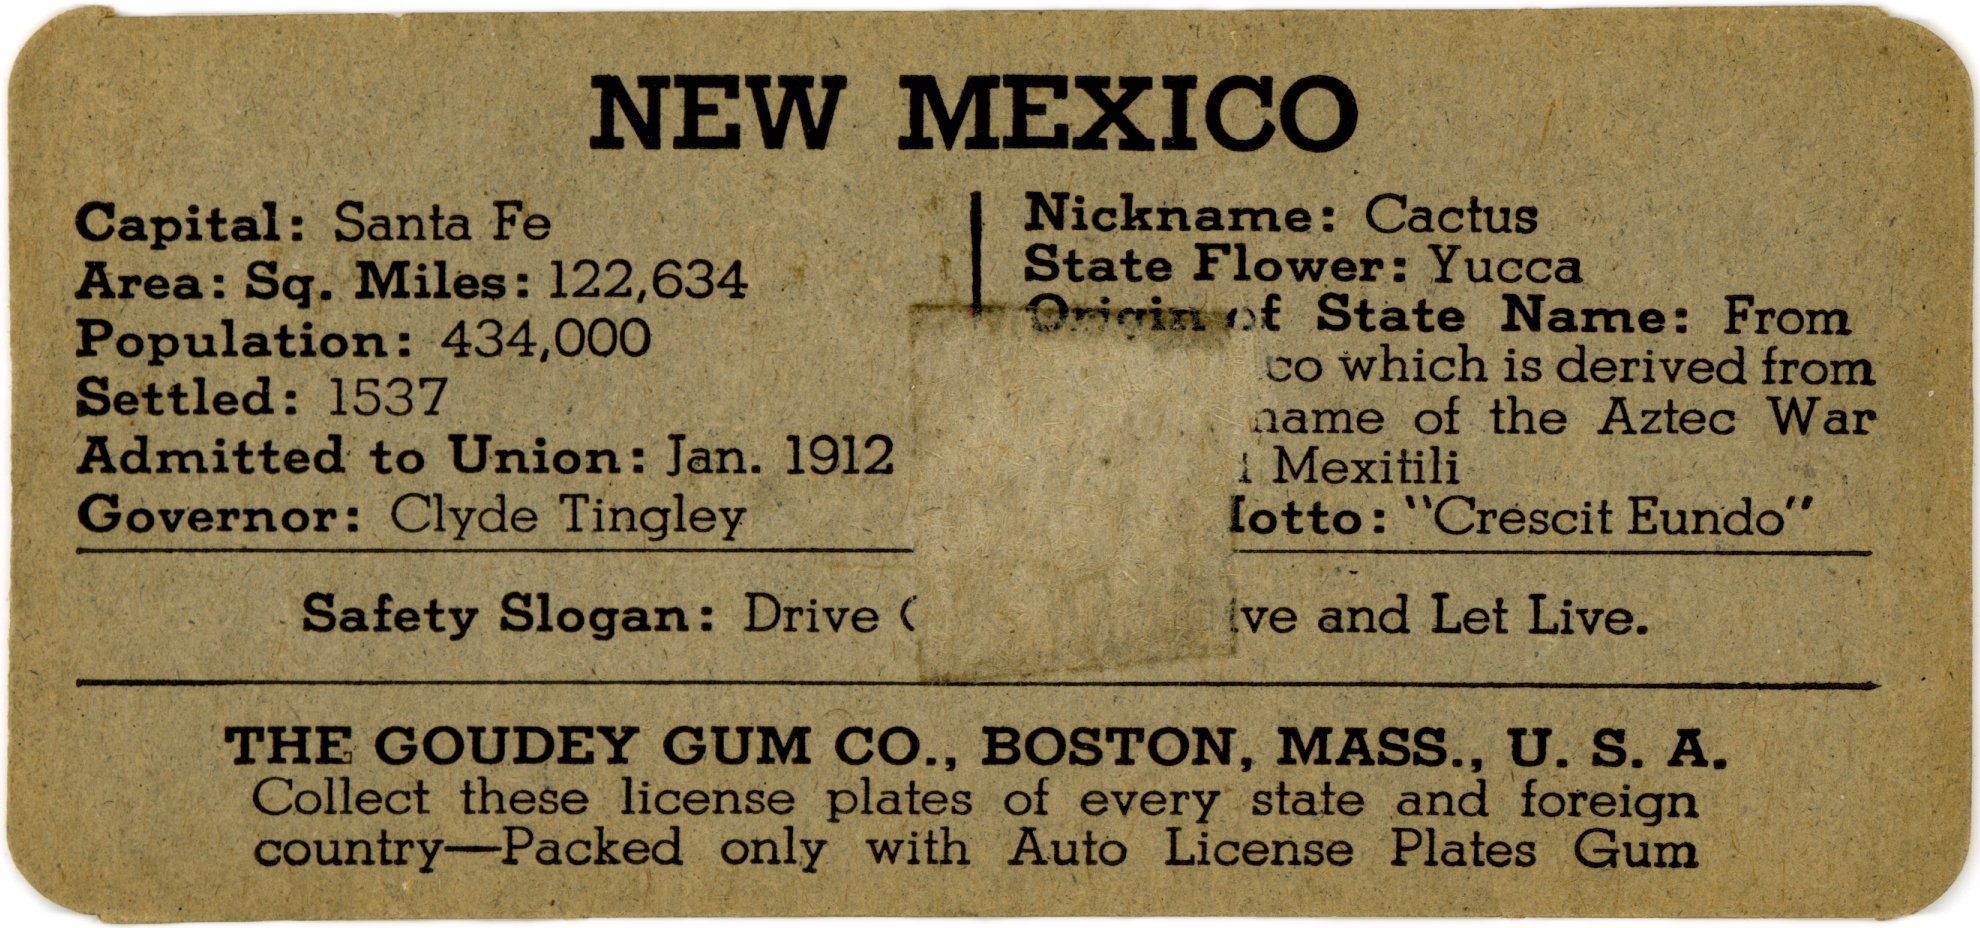 New Mexico Cereal & Gum Premiums License Plates